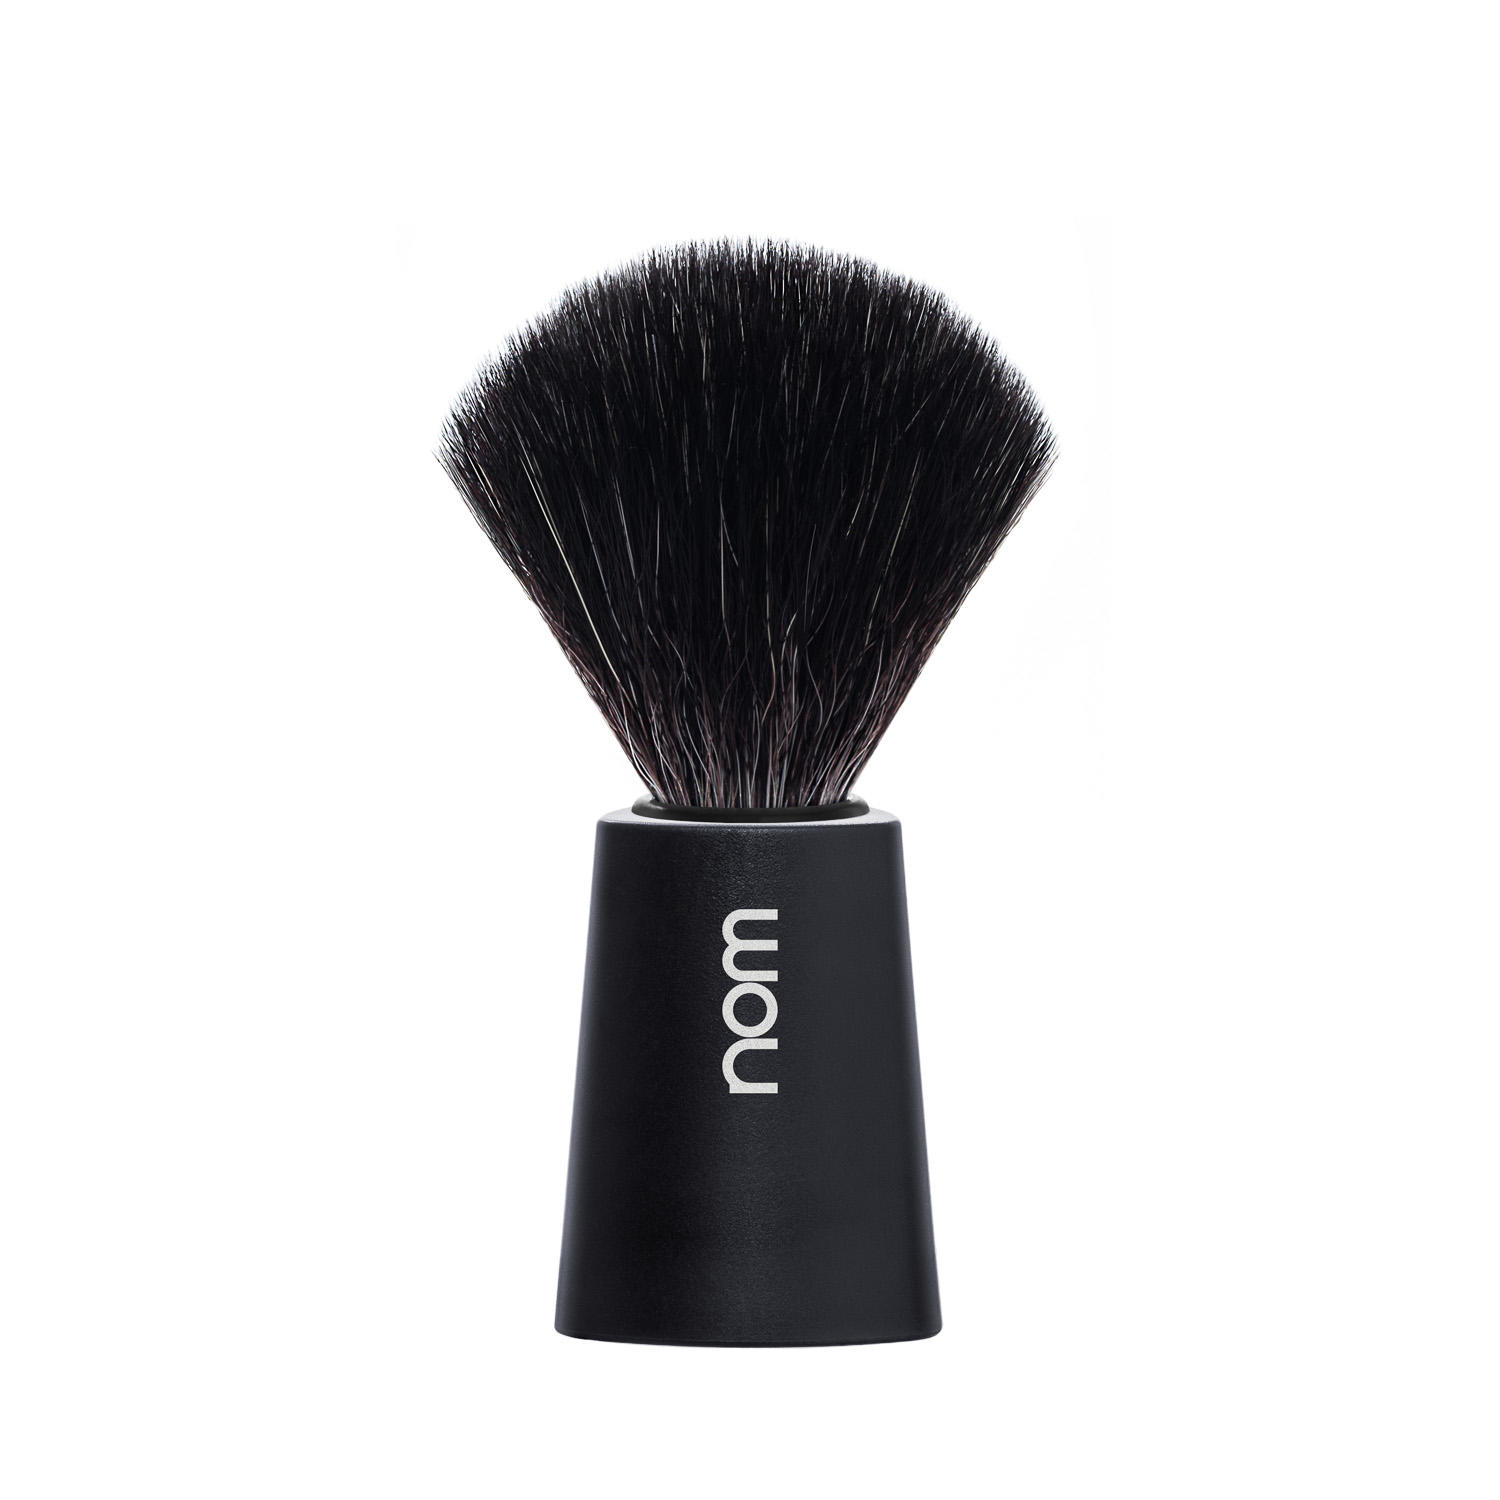 CARL21BL NOM, CARL, Black Handle, Black Fibre, Shaving Brush